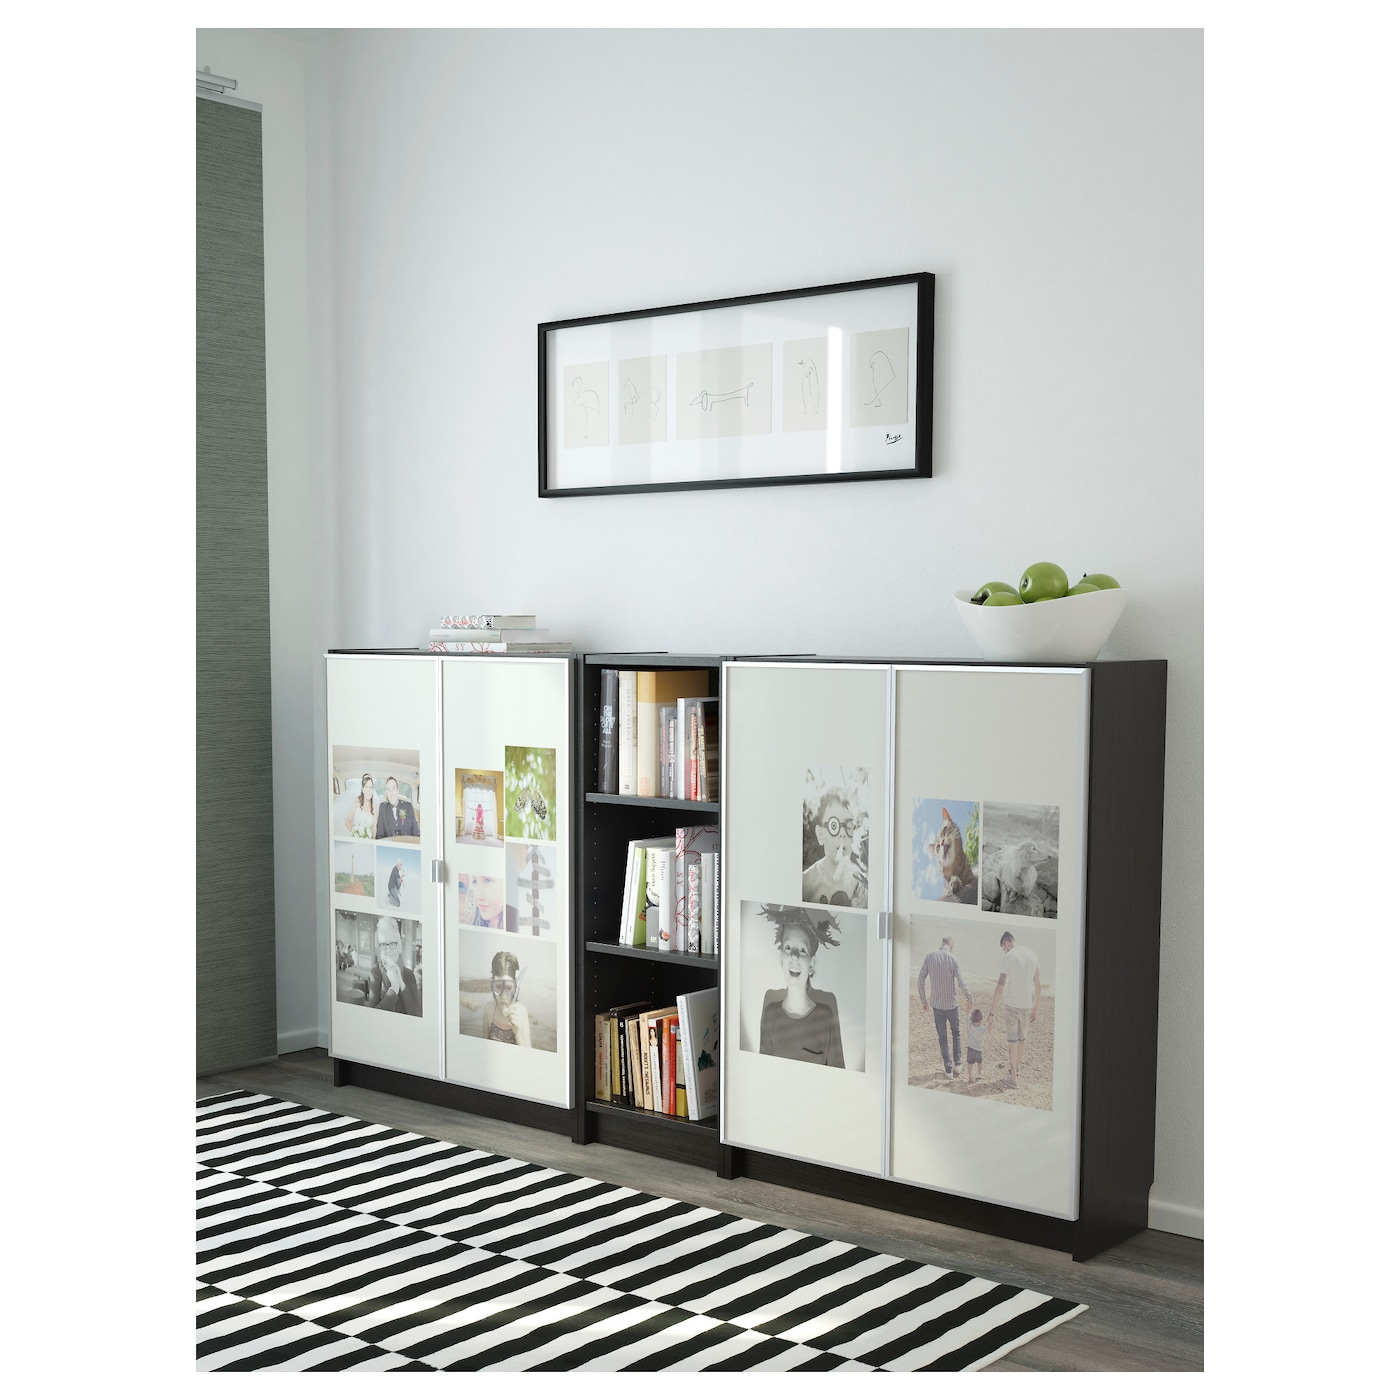 Ikea Billy Morliden Bookcase Surface Made From Natural Wood Veneer